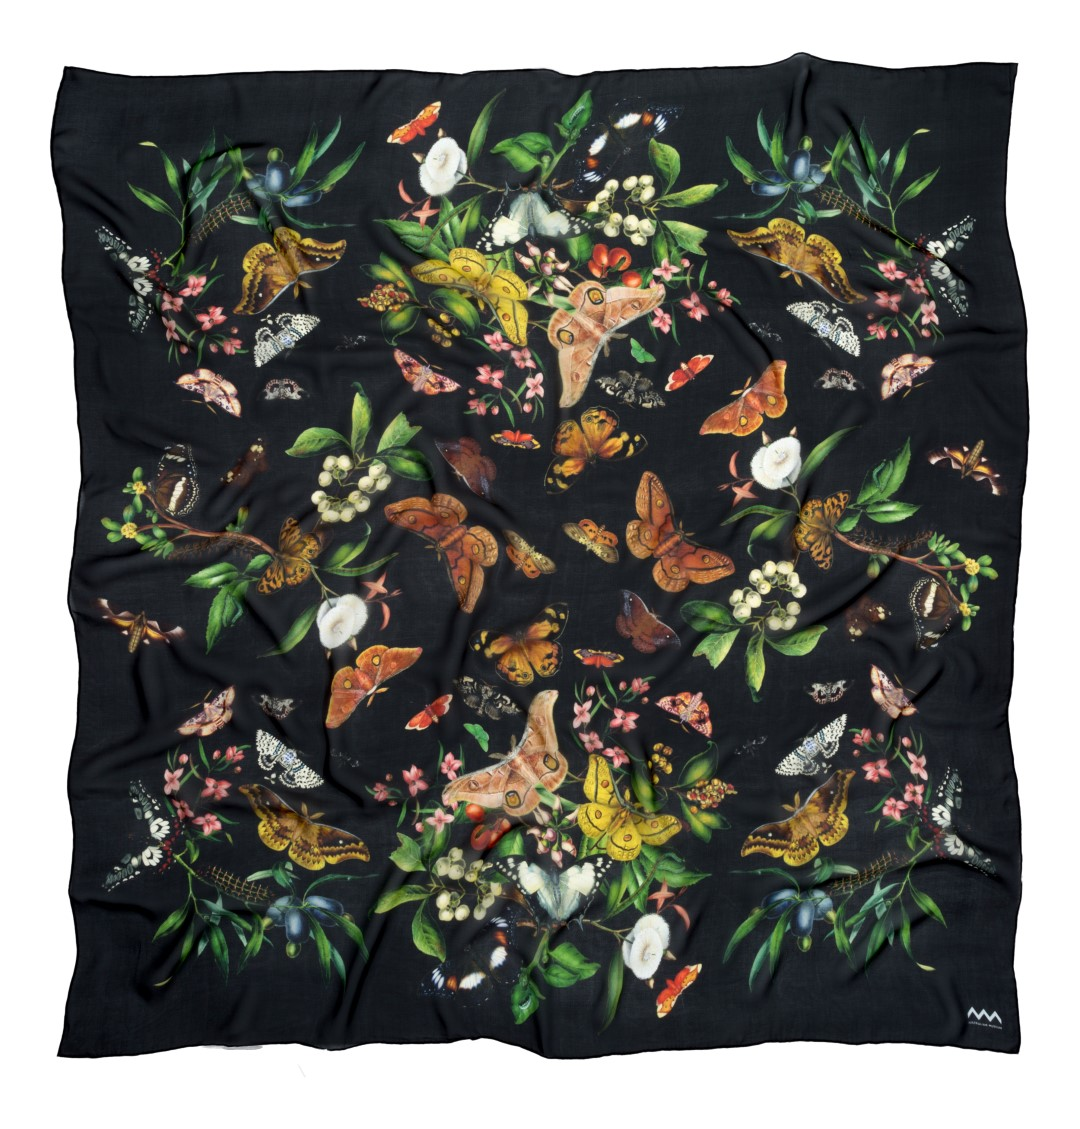 Scott Sisters Specimen silk scarf in black for the Australian Museum